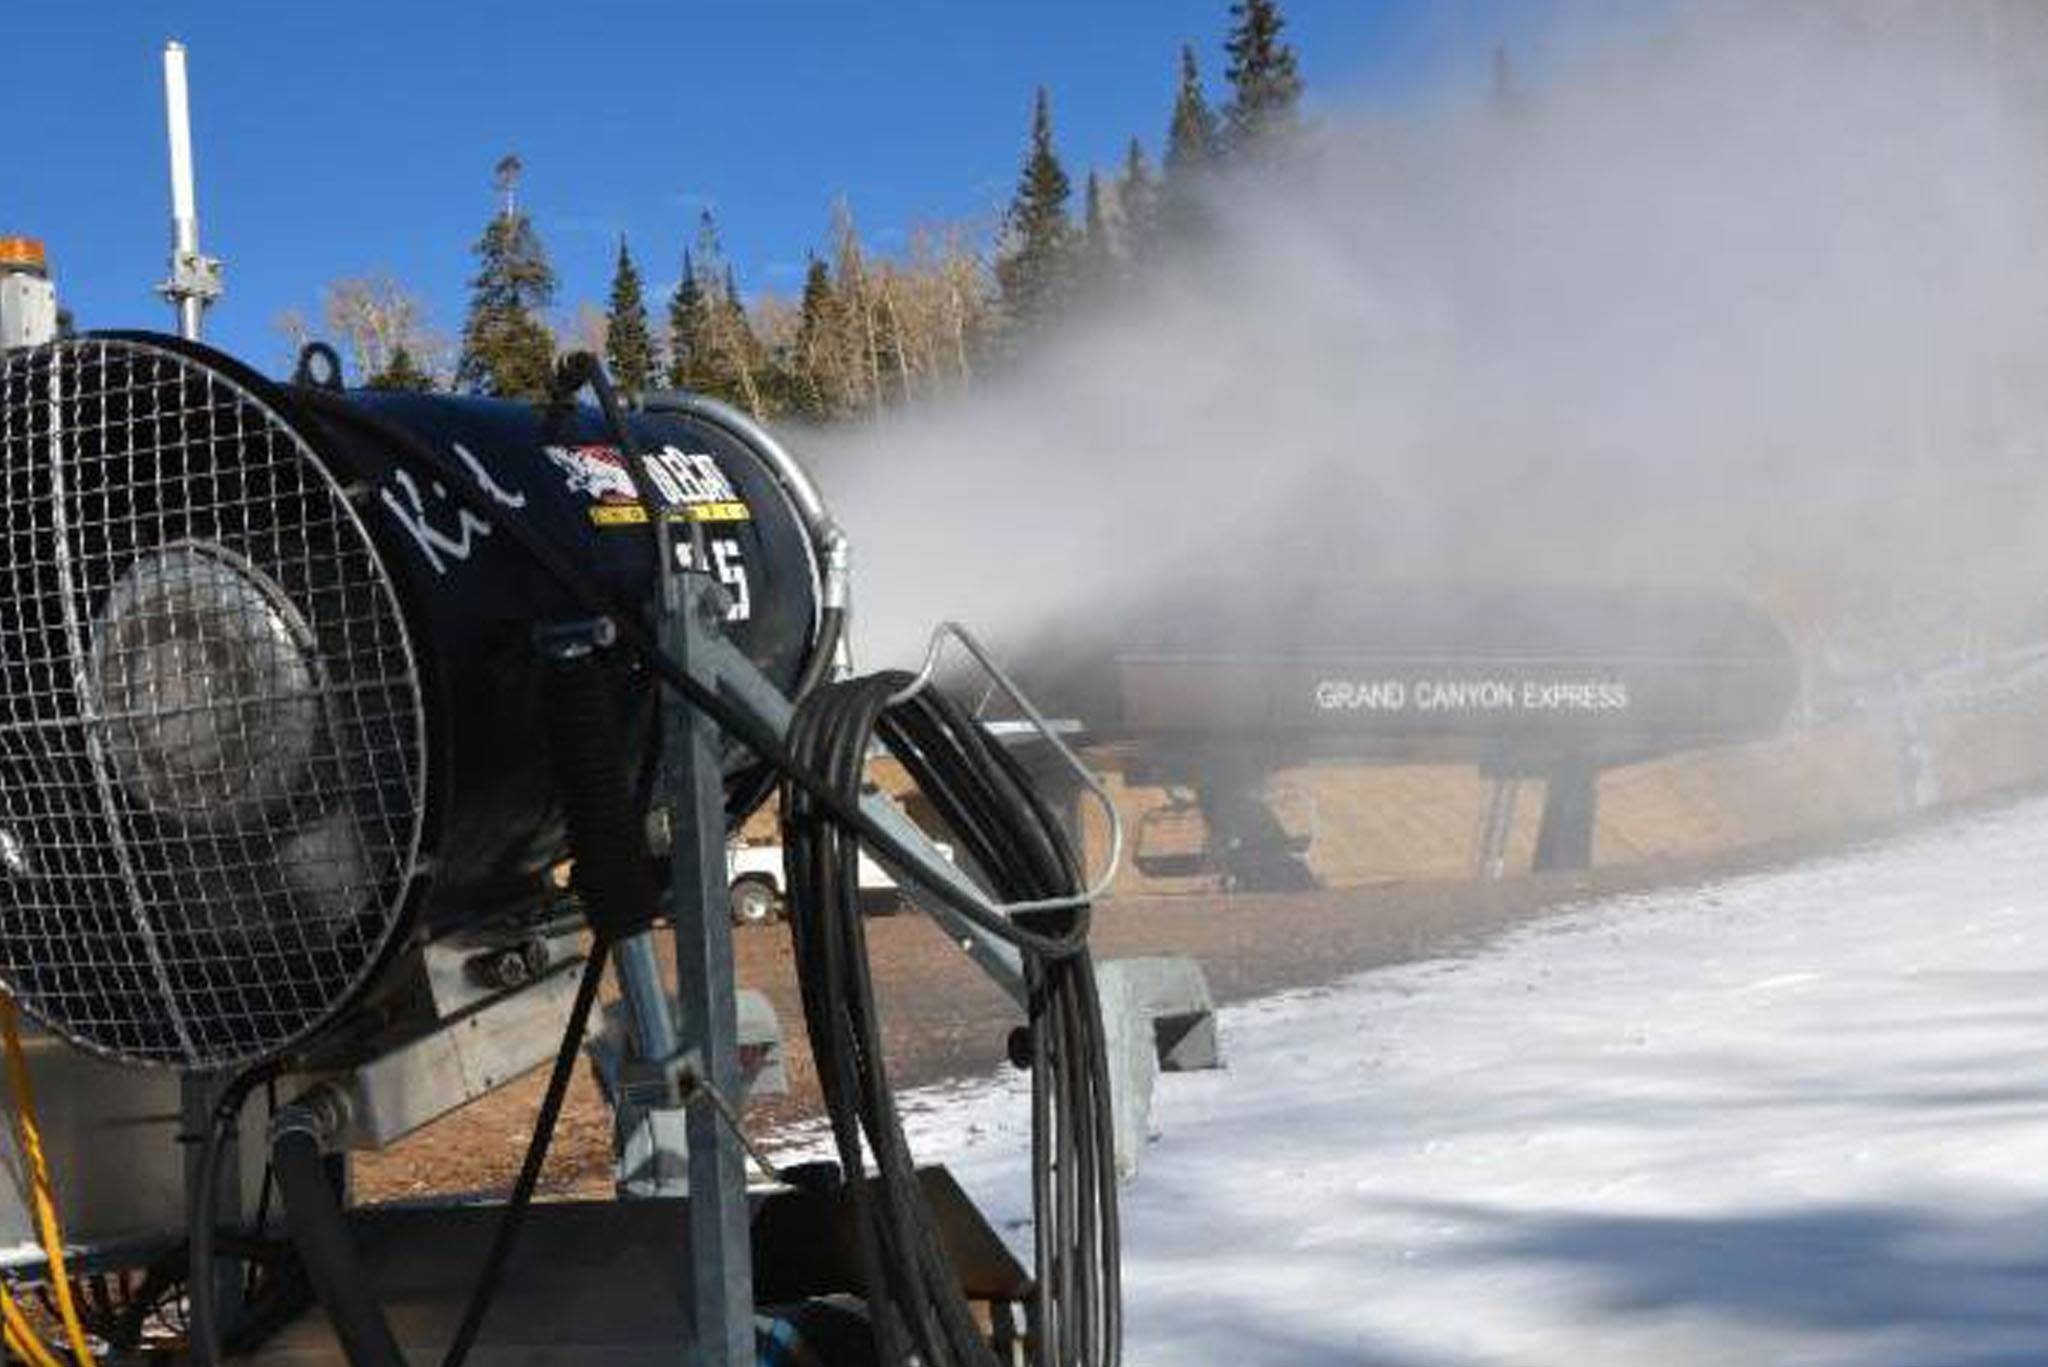 Haglin and his team started creating snow on Sept. 23. (Source: Snowbowl)